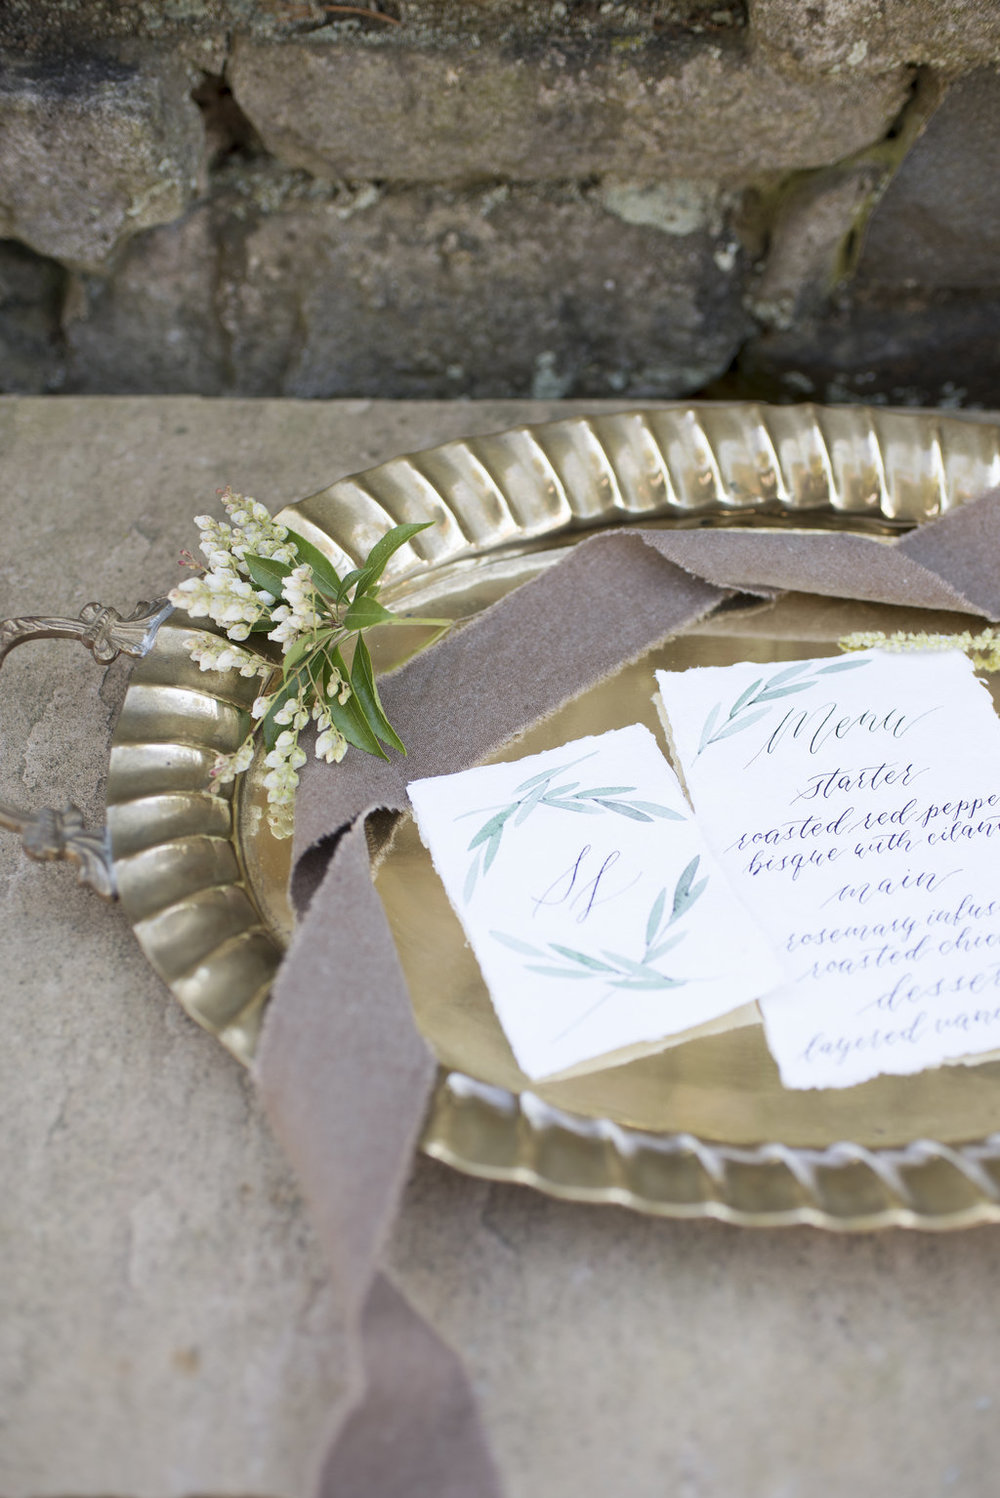 GardenWeddingInspiration_288.jpg